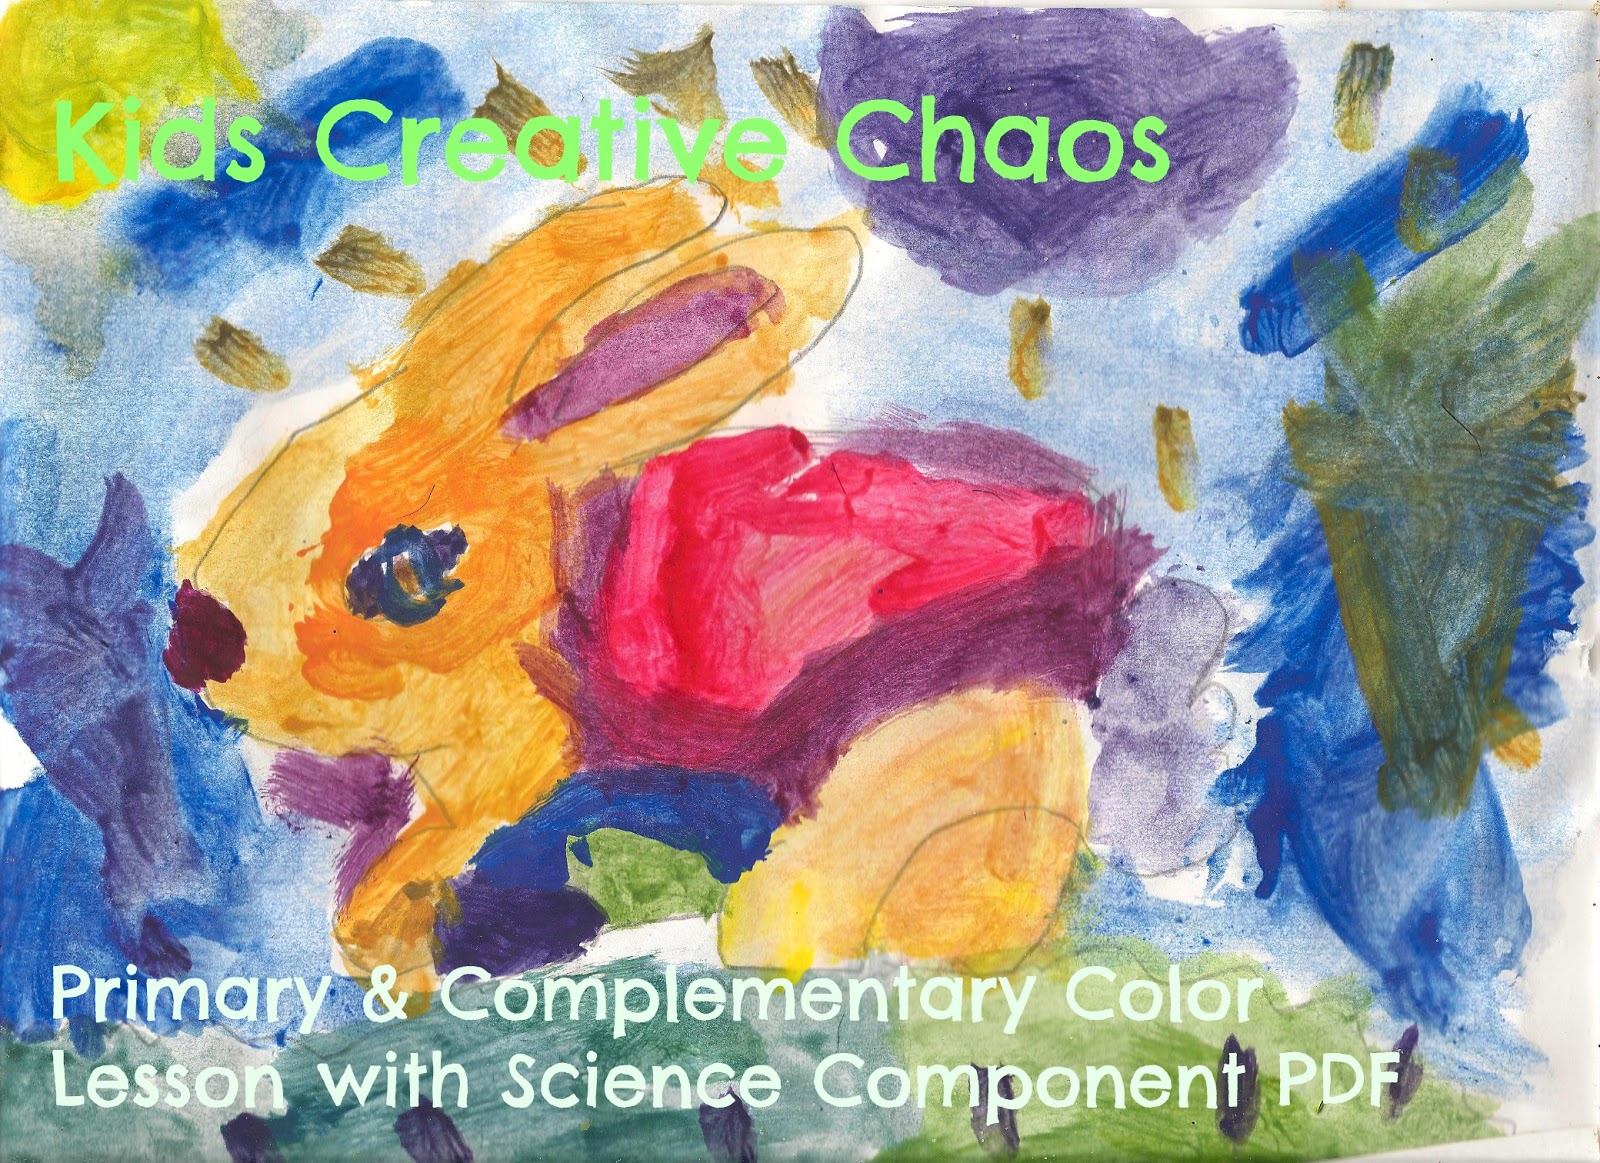 Color wheel art projects for kids - Paint A Primary And Complementary Color Bunny Elementary Art